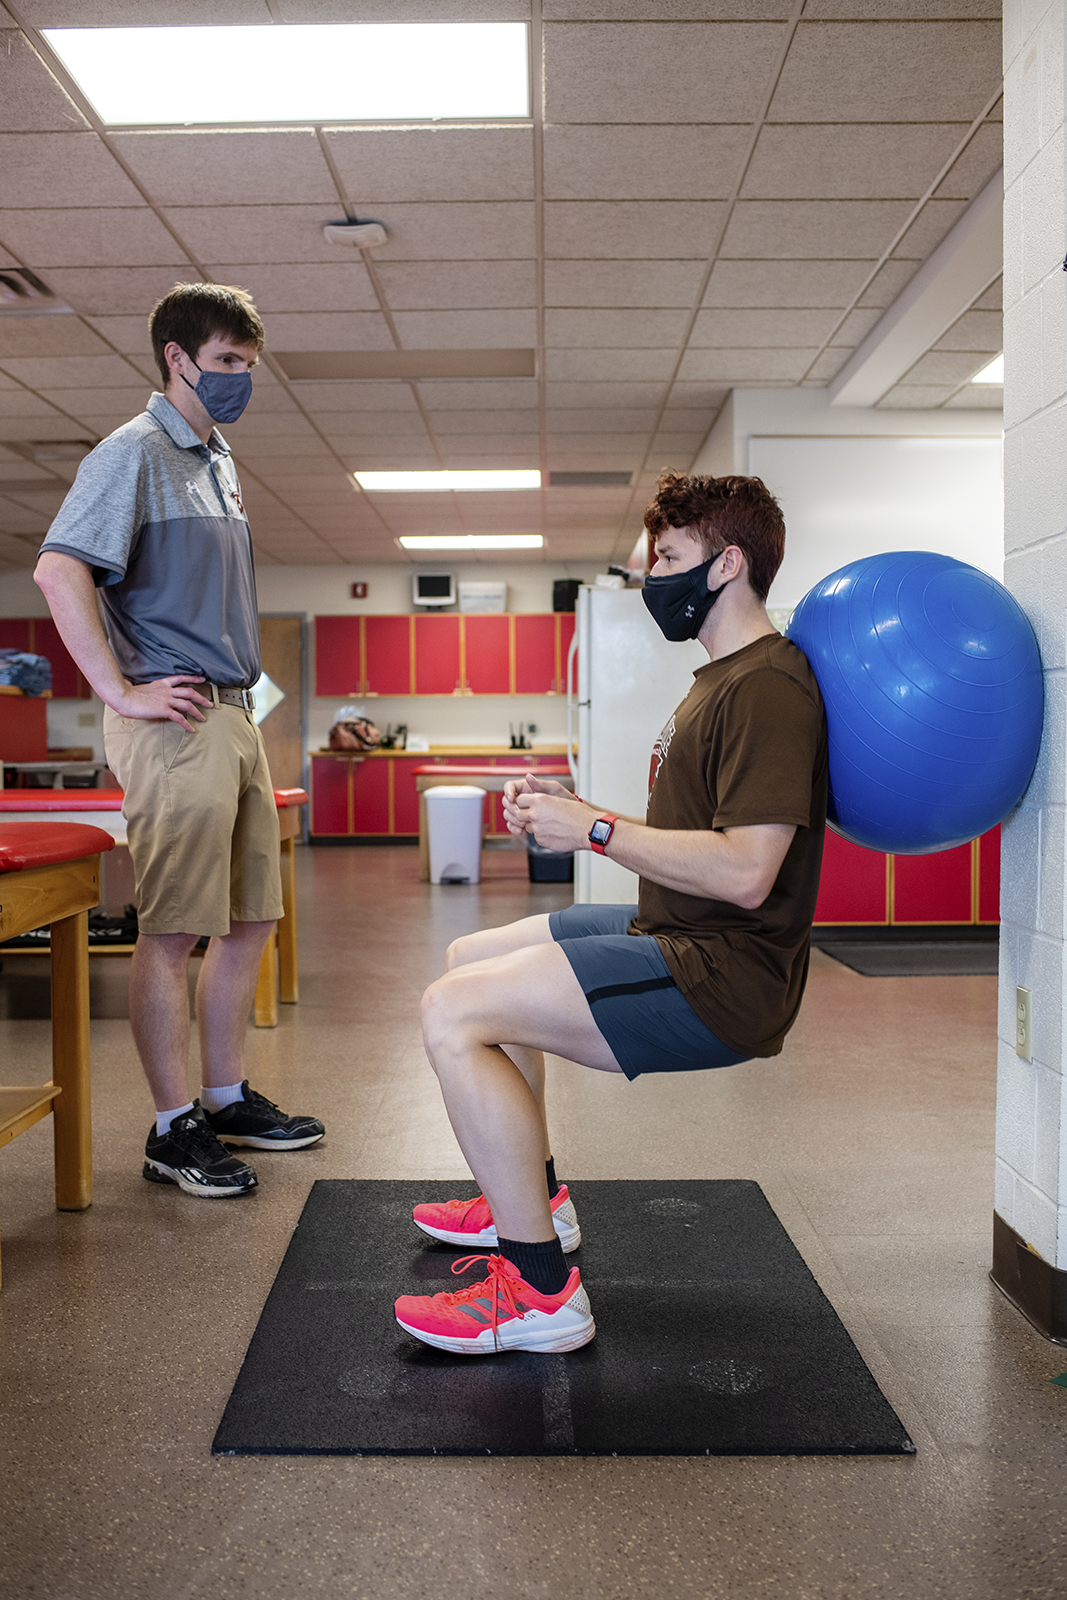 An athlete does wall sits against a blue workout ball while a trainer watches over them